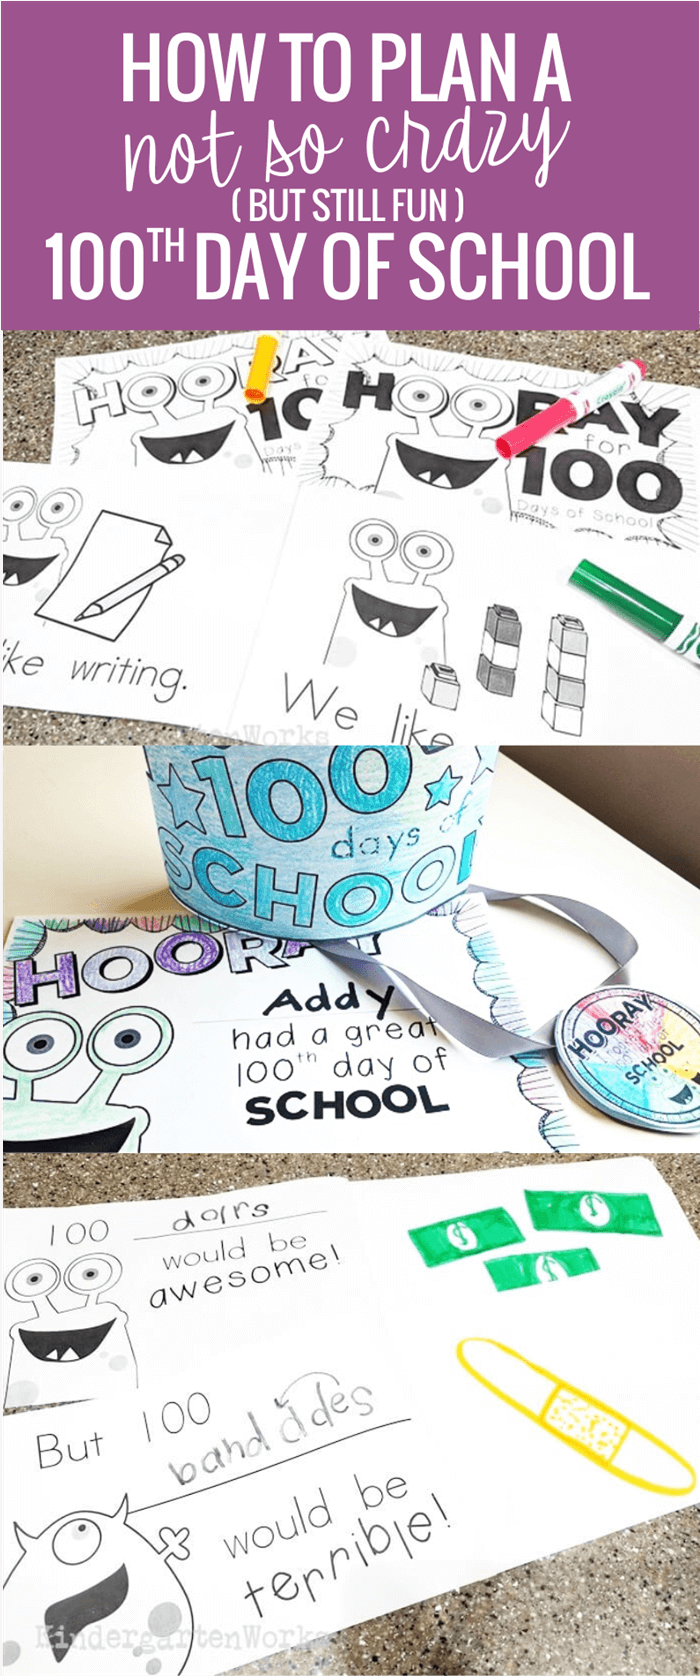 how to plan a not so crazy 100th day of school